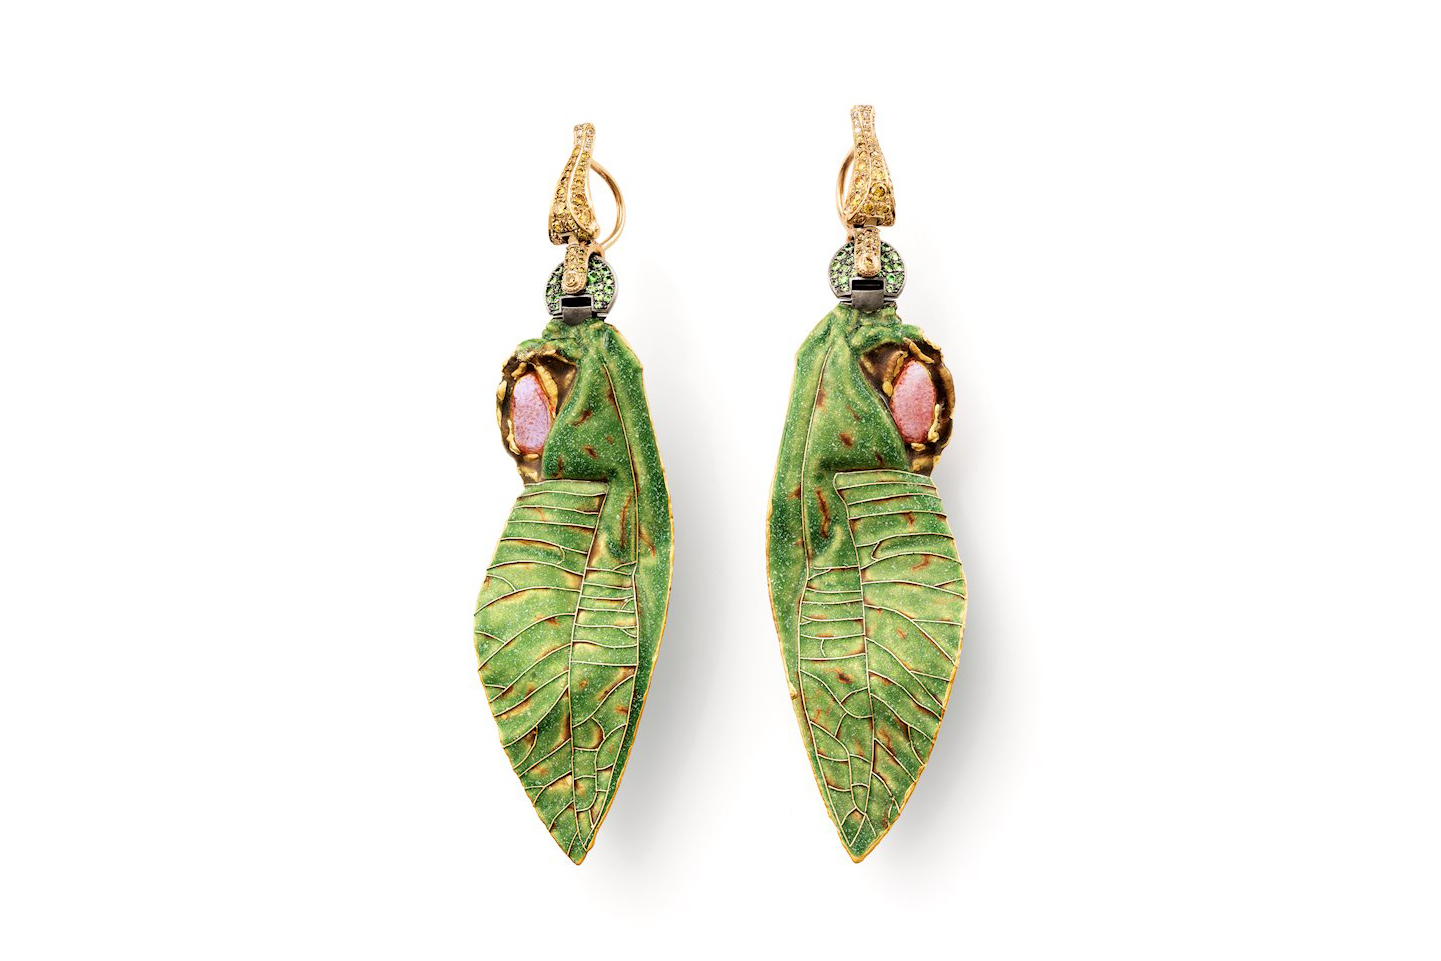 Otto Jakob Tettix earrings with tsavorites, fancy yellow and light brown diamonds, vitreous enamel and plique-à-jour enamel in painted yellow gold